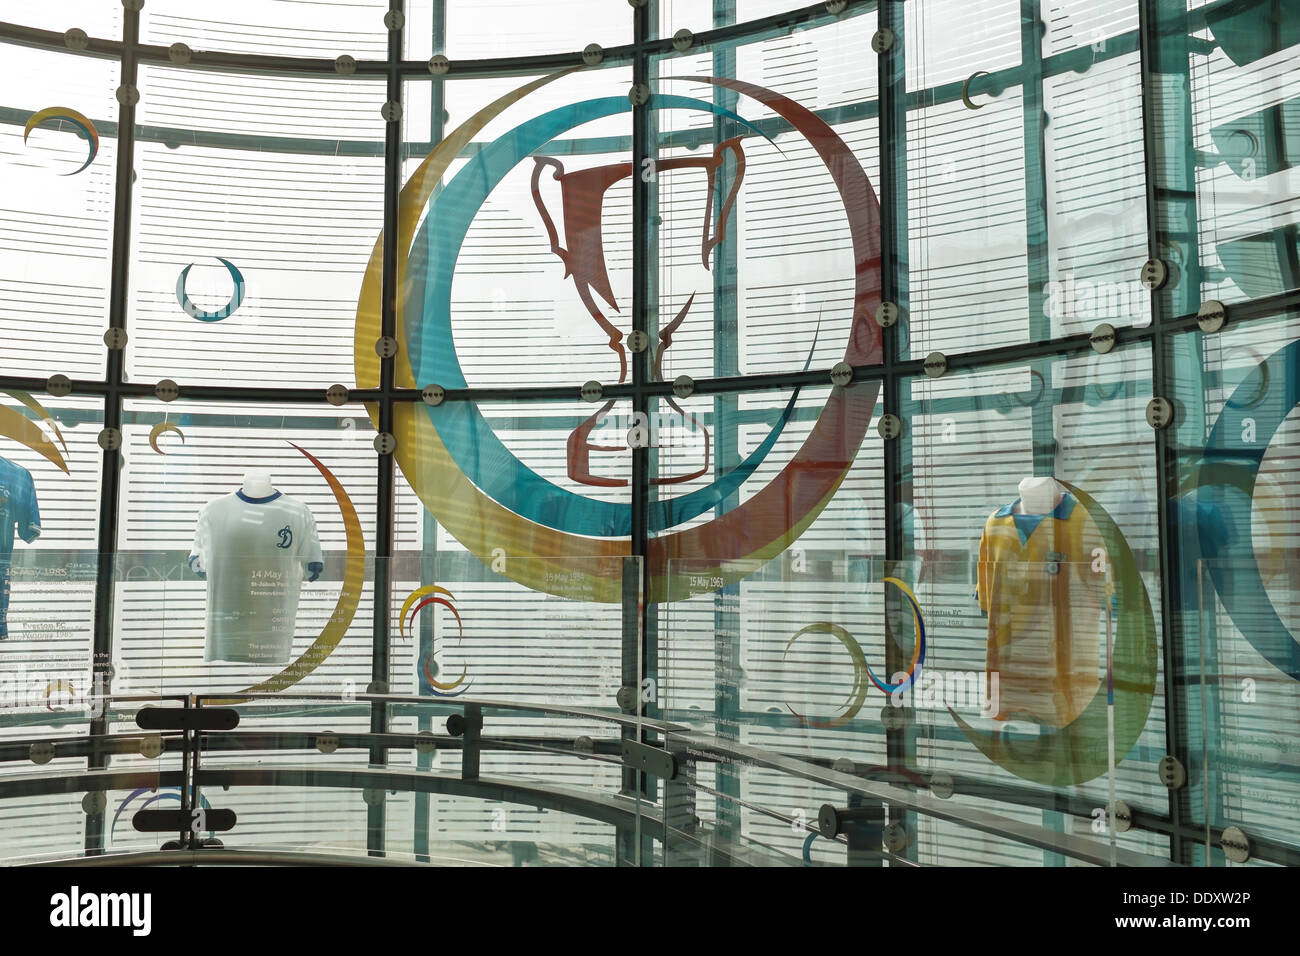 Decorative glass windows in  National Football Museum at Urbis in Manchester city centre, UK - Stock Image